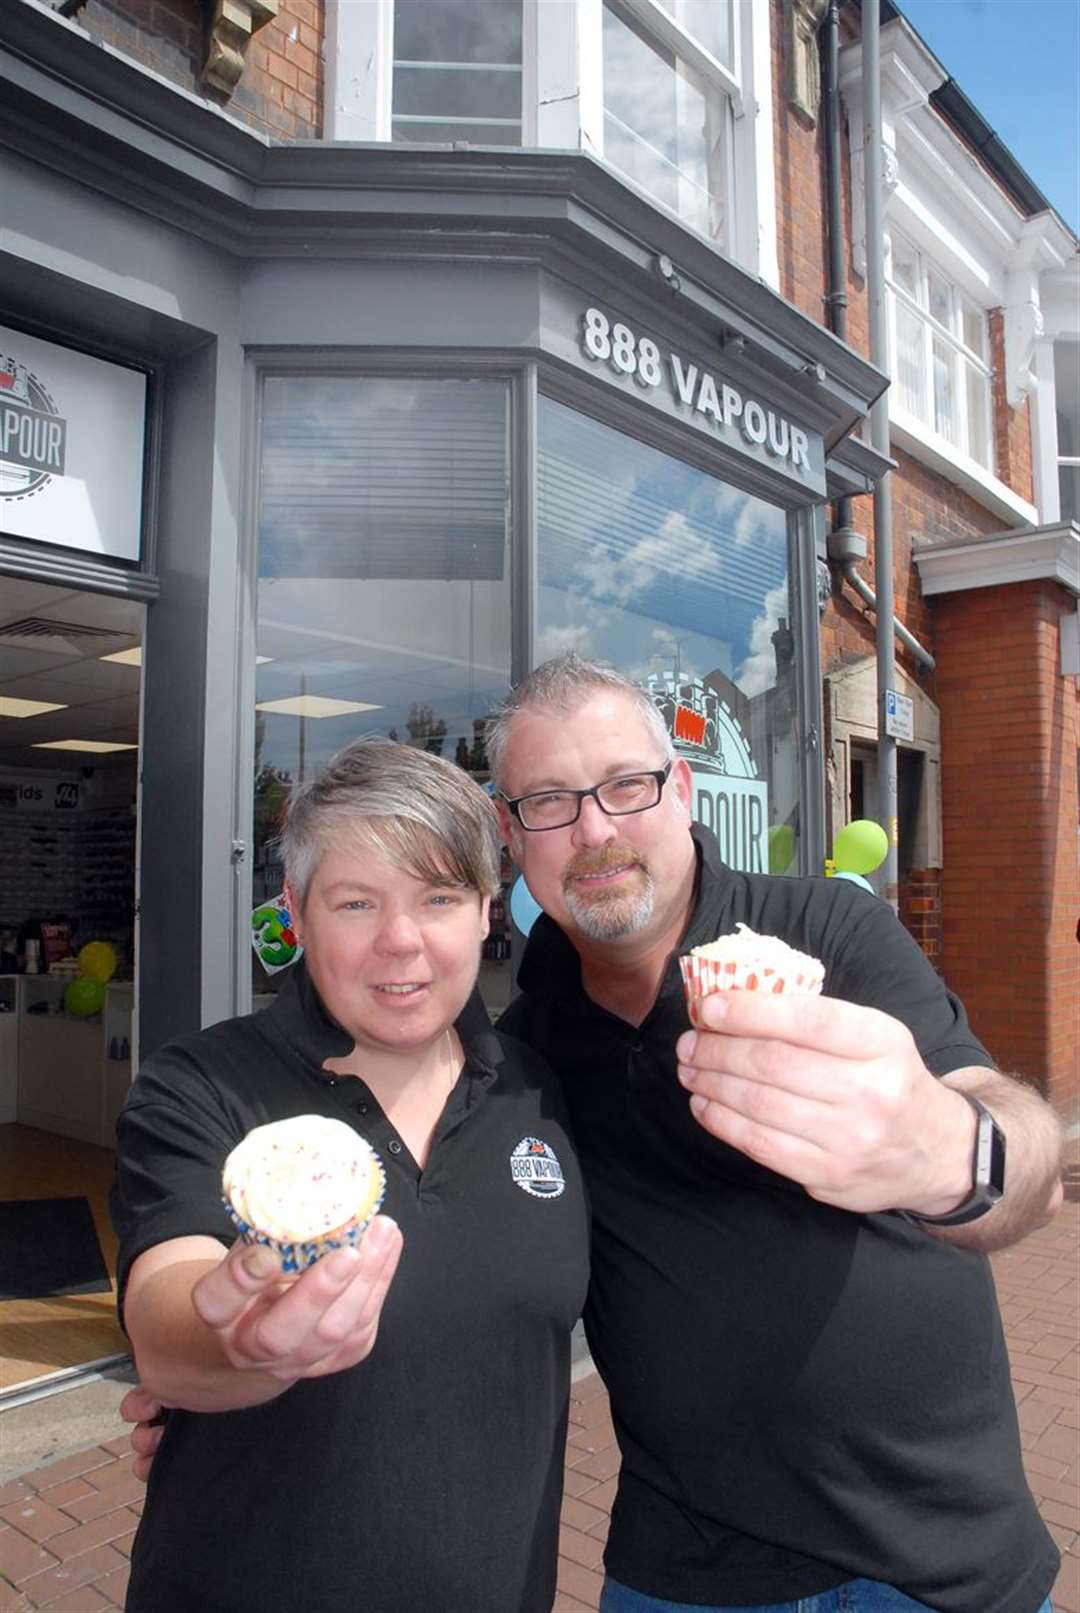 Sally Grooby and Colin Wallers celebrate with cup cakes.